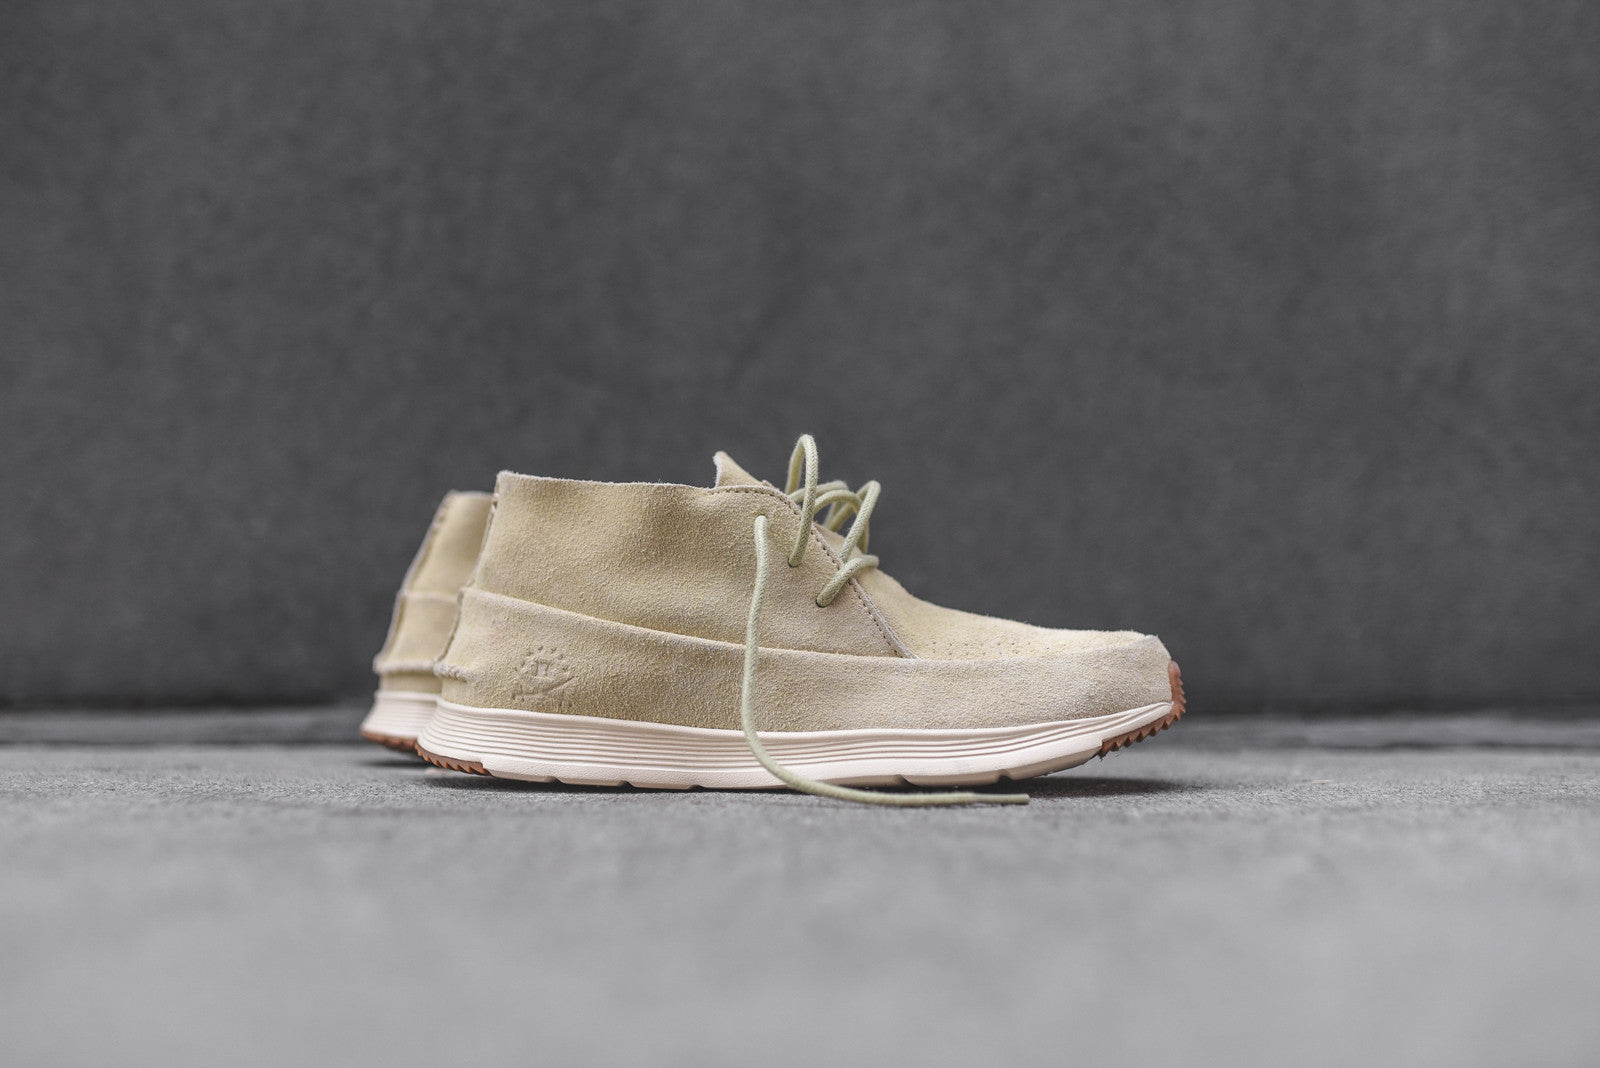 Https Blogs Art 2018 11 27t175612 0500 Weekly D Island Shoes Style Hikers Dm Mens Leather Cokelat Ransom Alta Mid Sand 1v1457627523